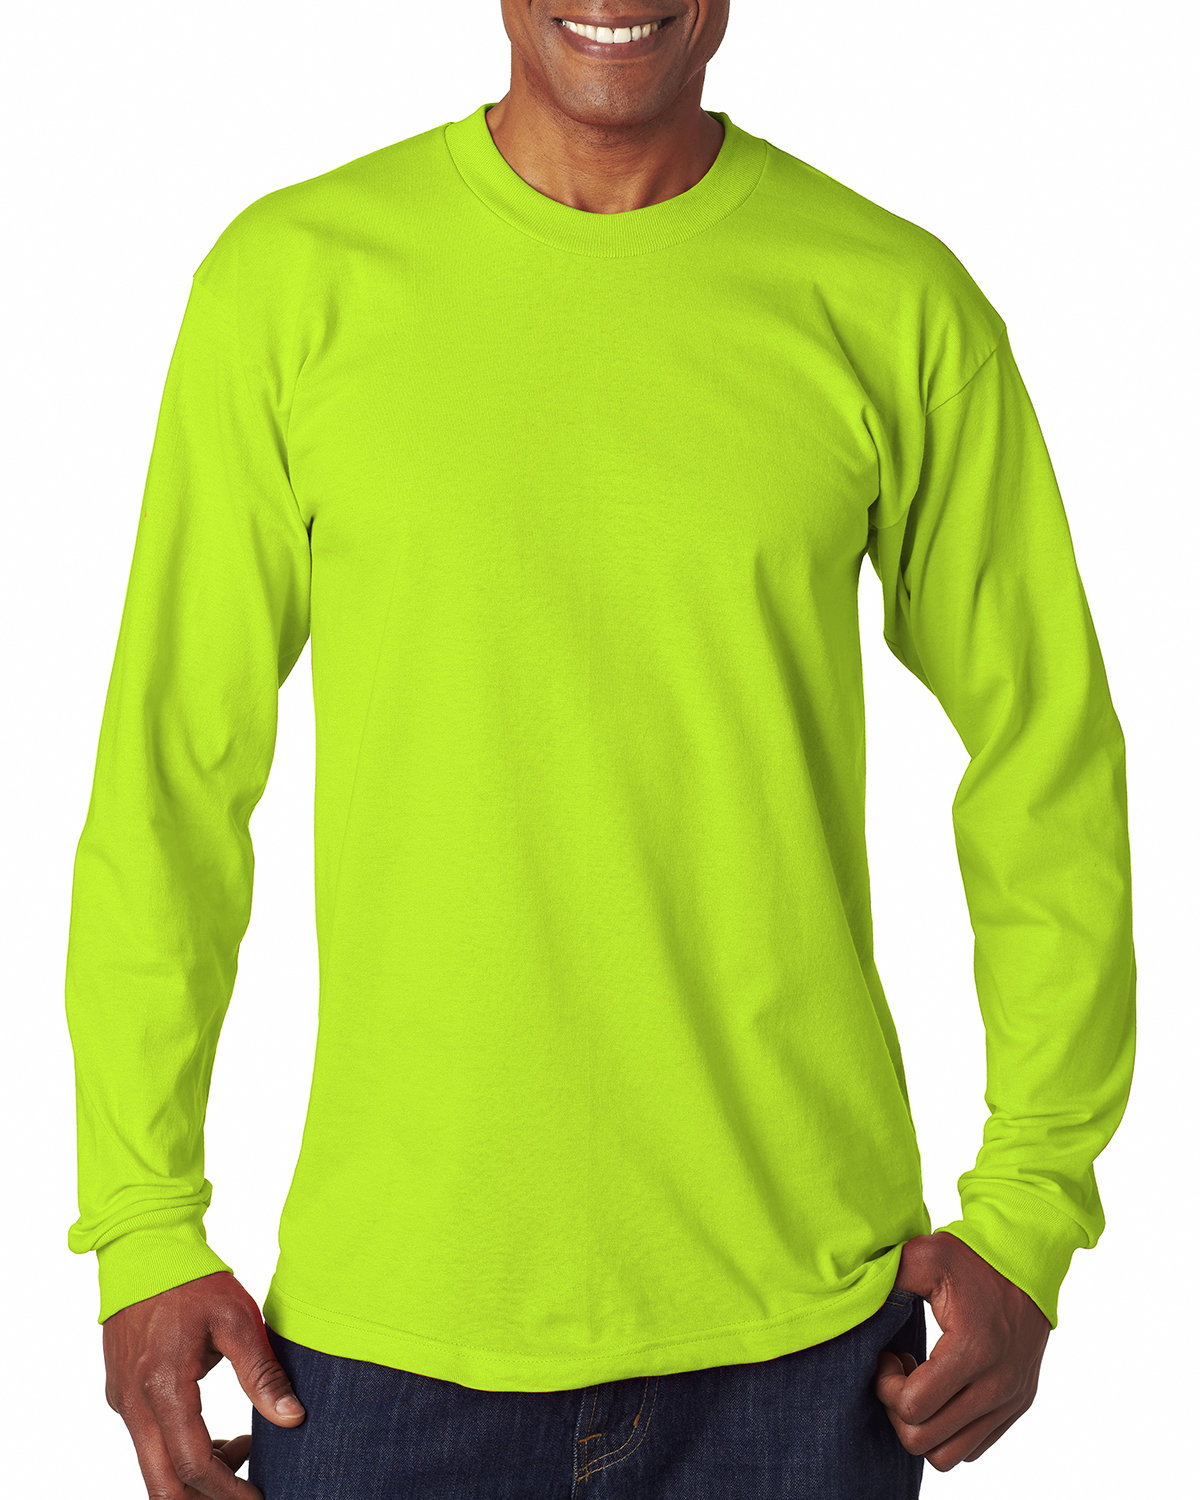 Bayside Adult 6.1 oz., 100% Cotton Long Sleeve T-Shirt LIME GREEN